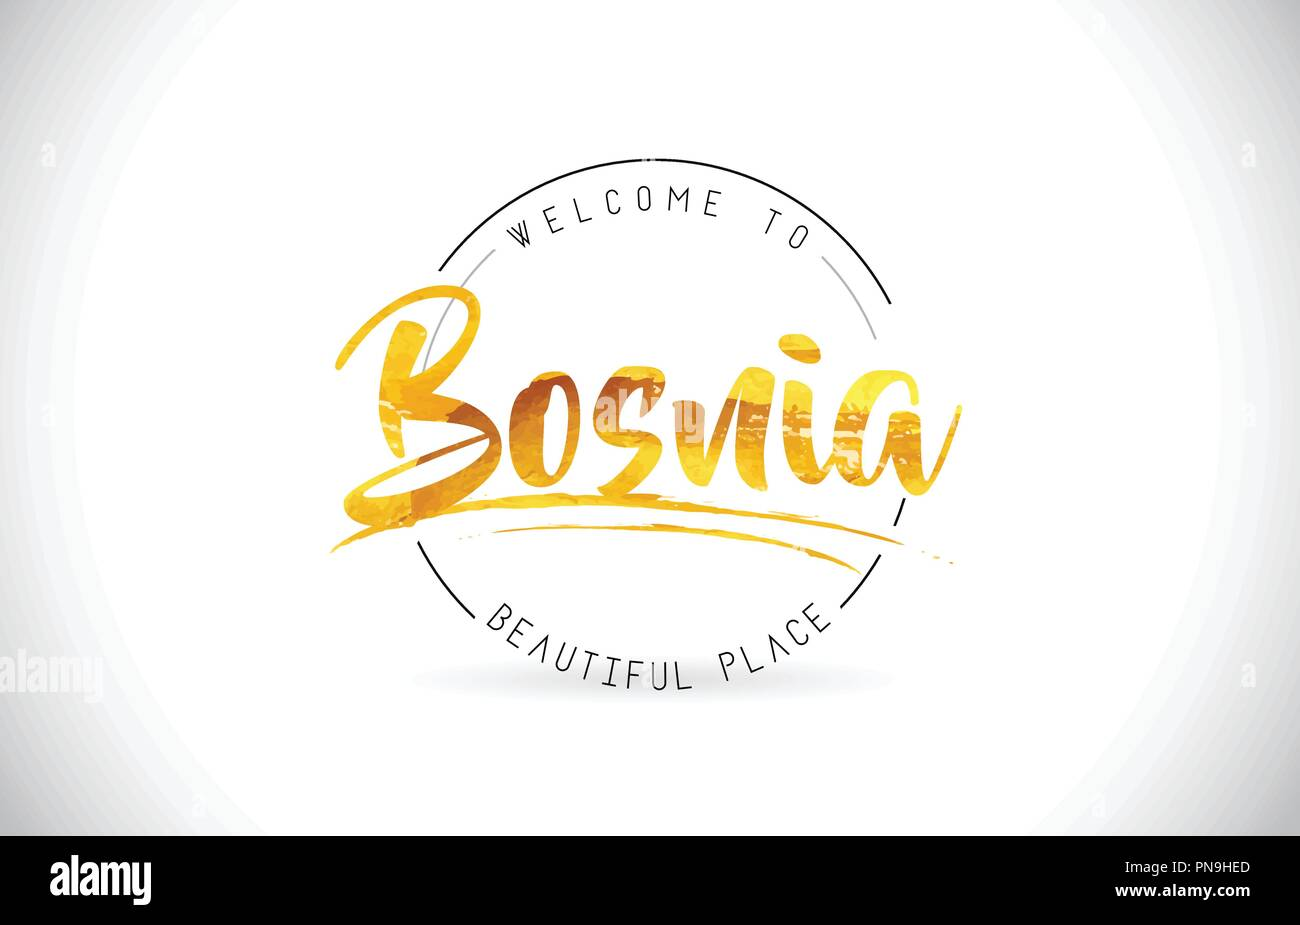 Bosnia Welcome To Word Text with Handwritten Font and Golden Texture Design Illustration Vector. - Stock Vector